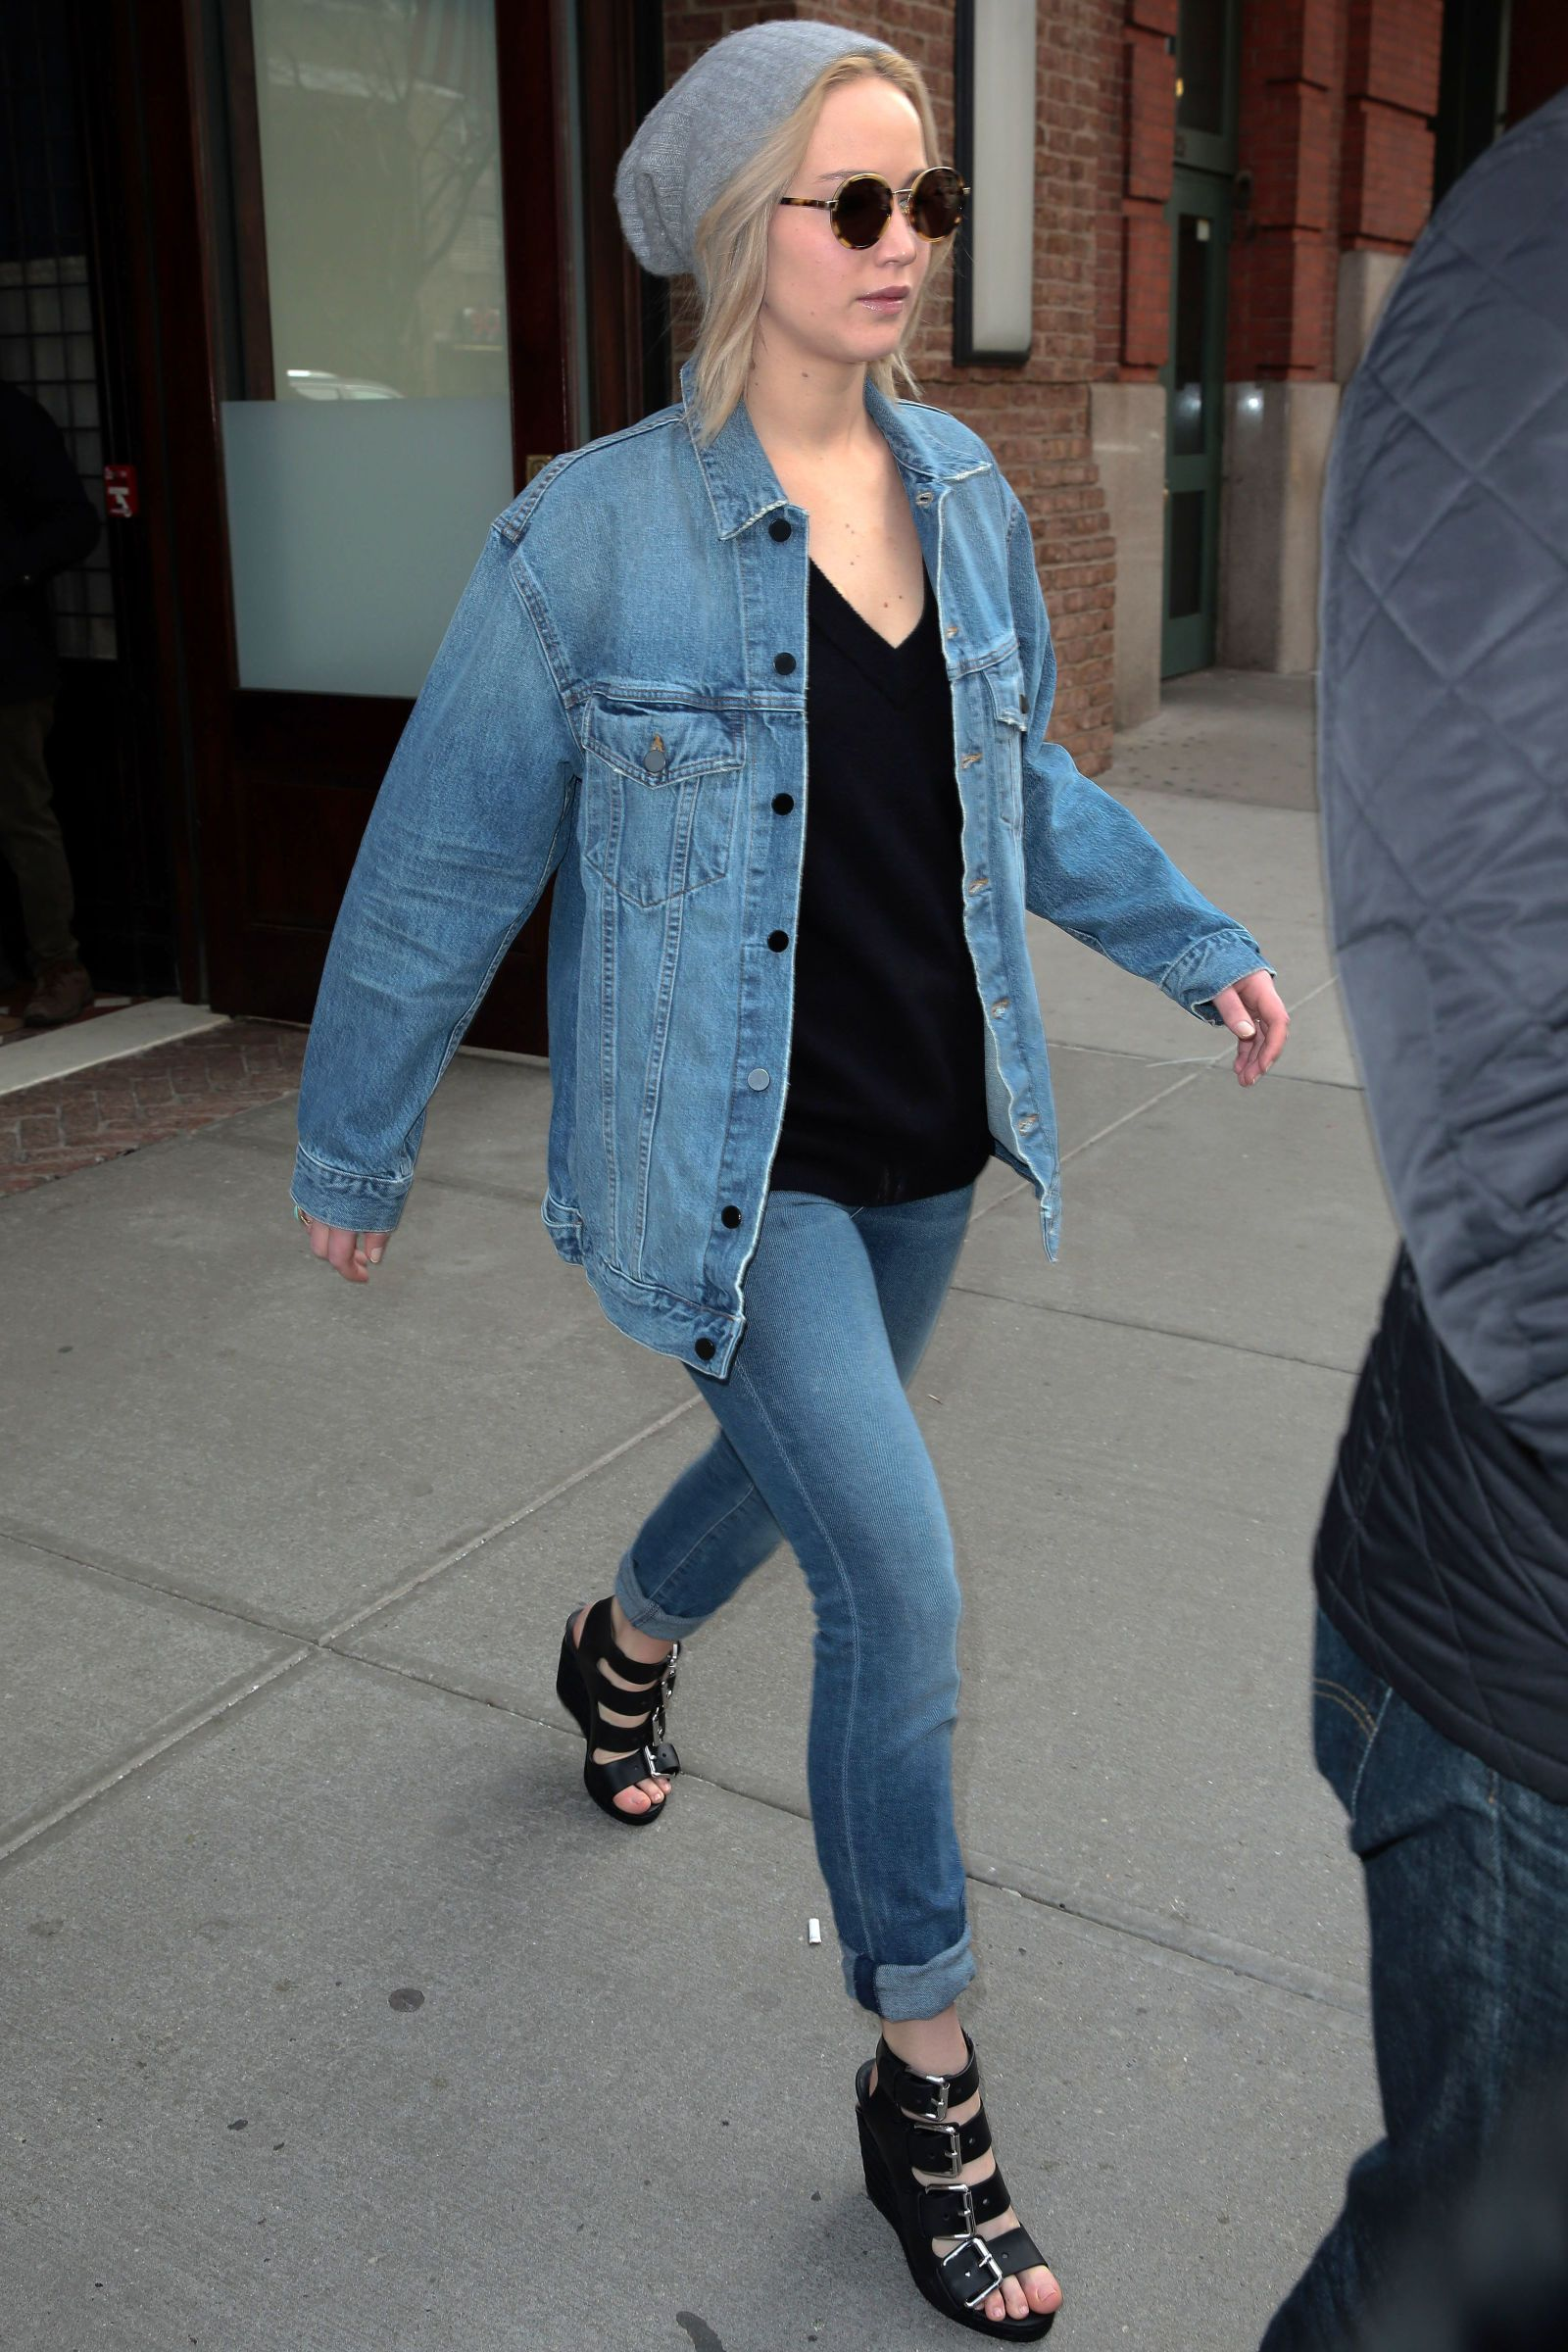 32 jennifer lawrence casual street style to inspire your outfit 32 jennifer lawrence casual street style to inspire your outfit voltagebd Image collections